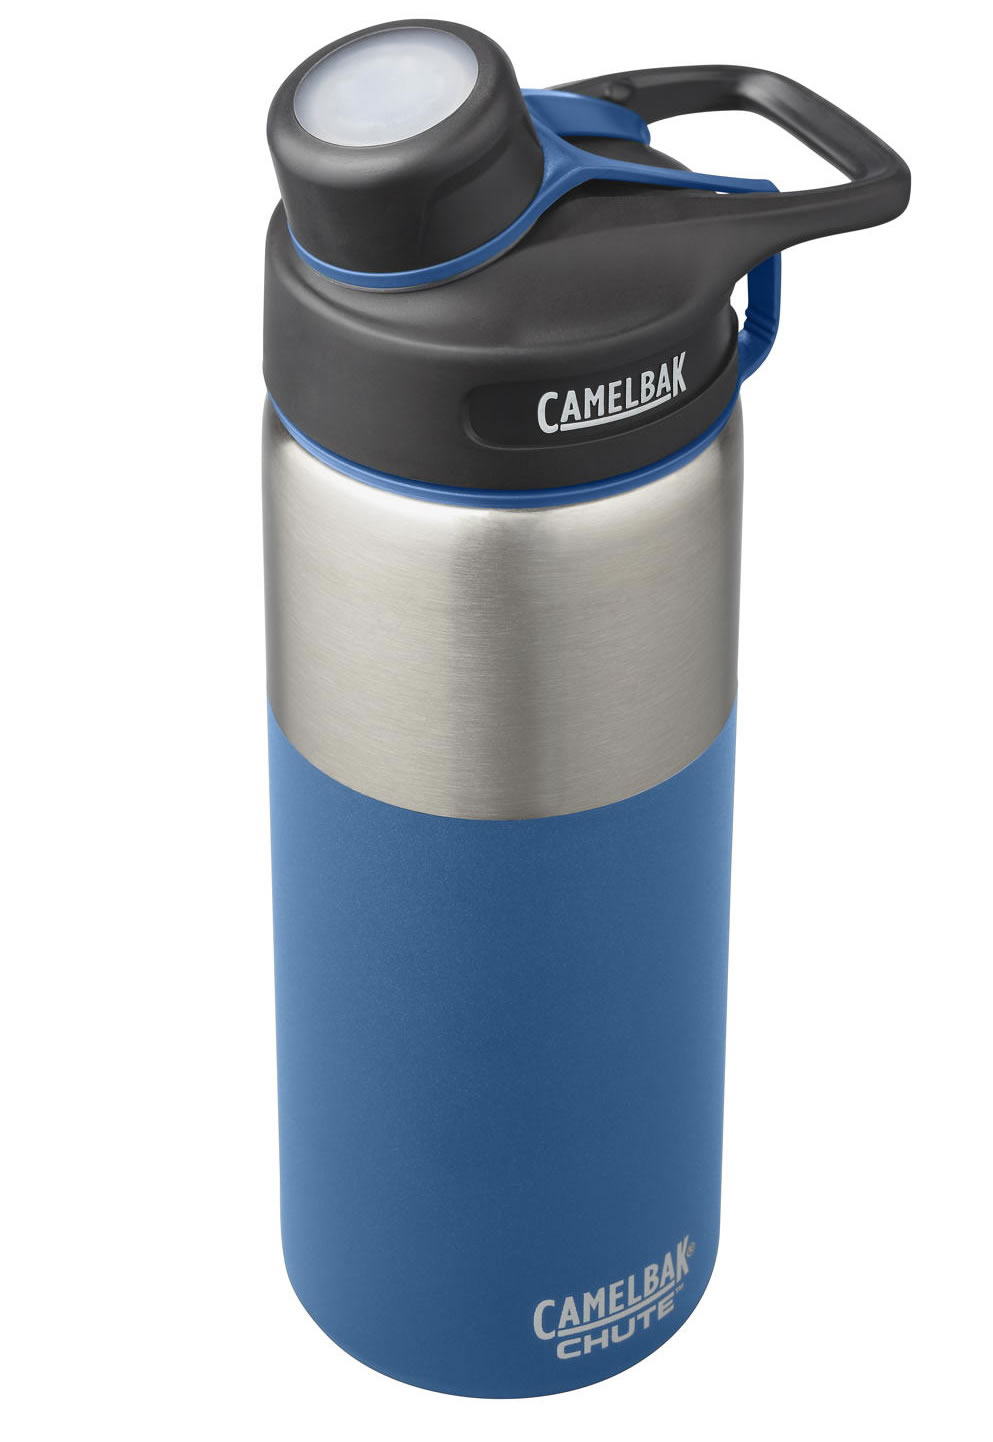 CamelBak Insulated Bottle, Double Wall Insulation